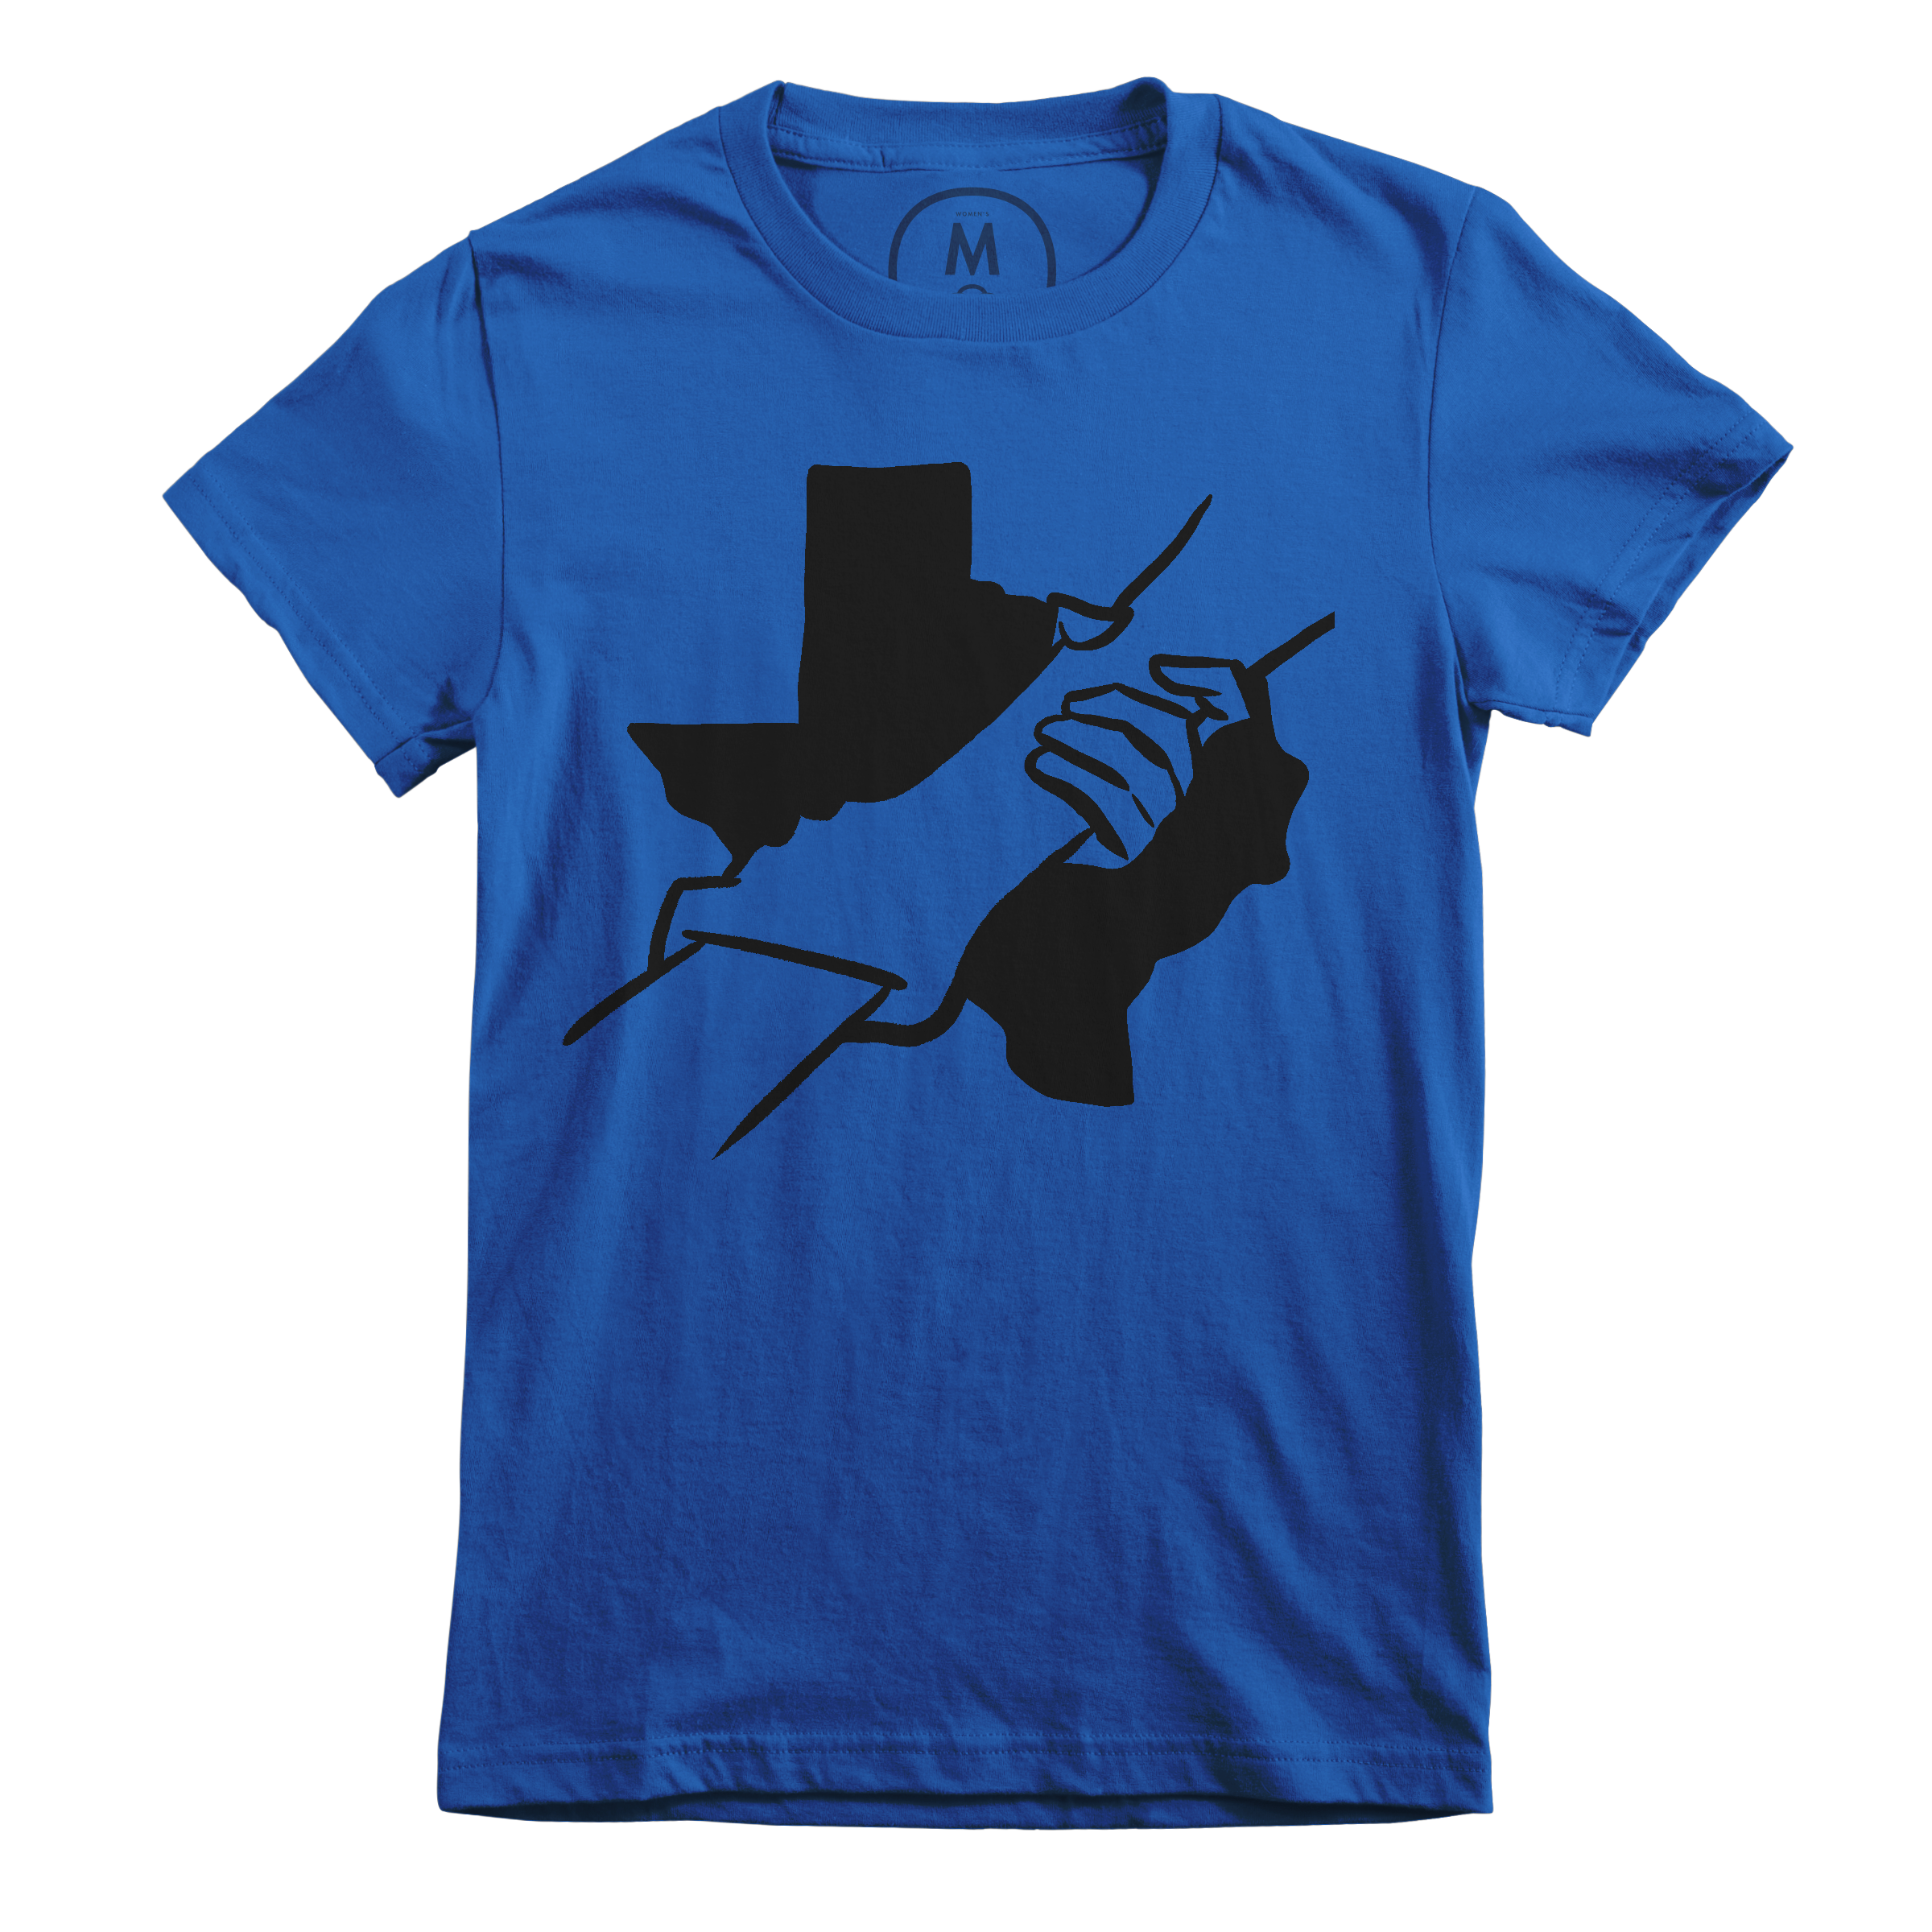 Let's Do It For Texas, Ya'll Royal (Women's)